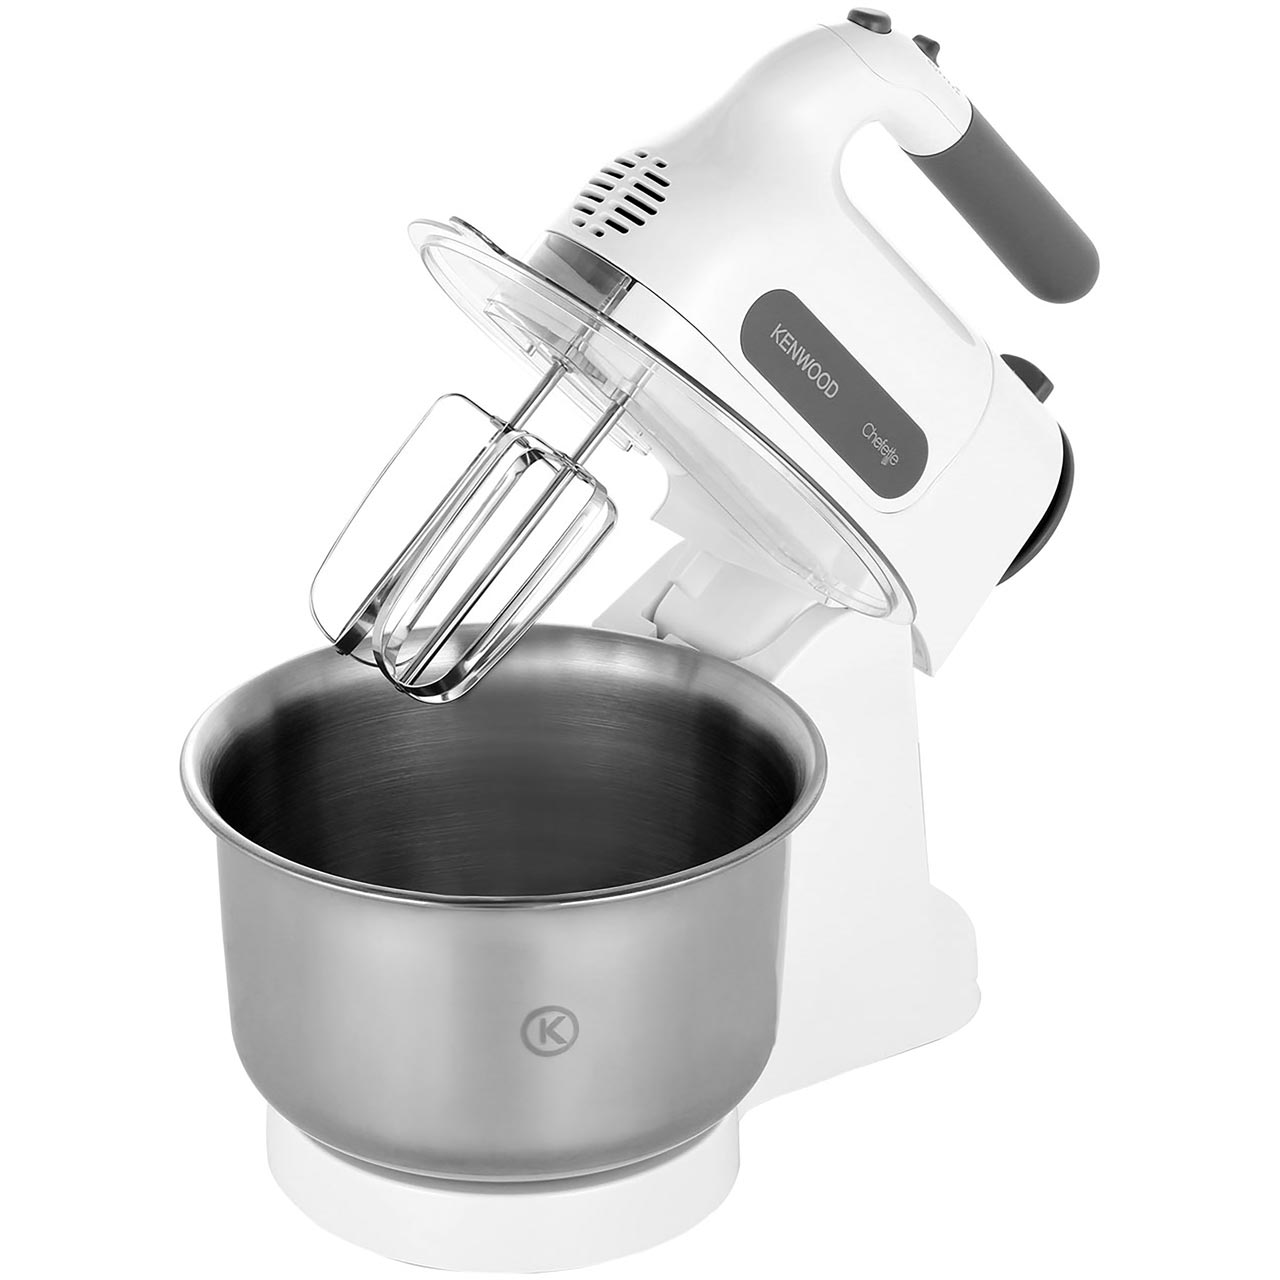 Kenwood Cheffette HM680 Hand Mixer with 2 Accessories - White